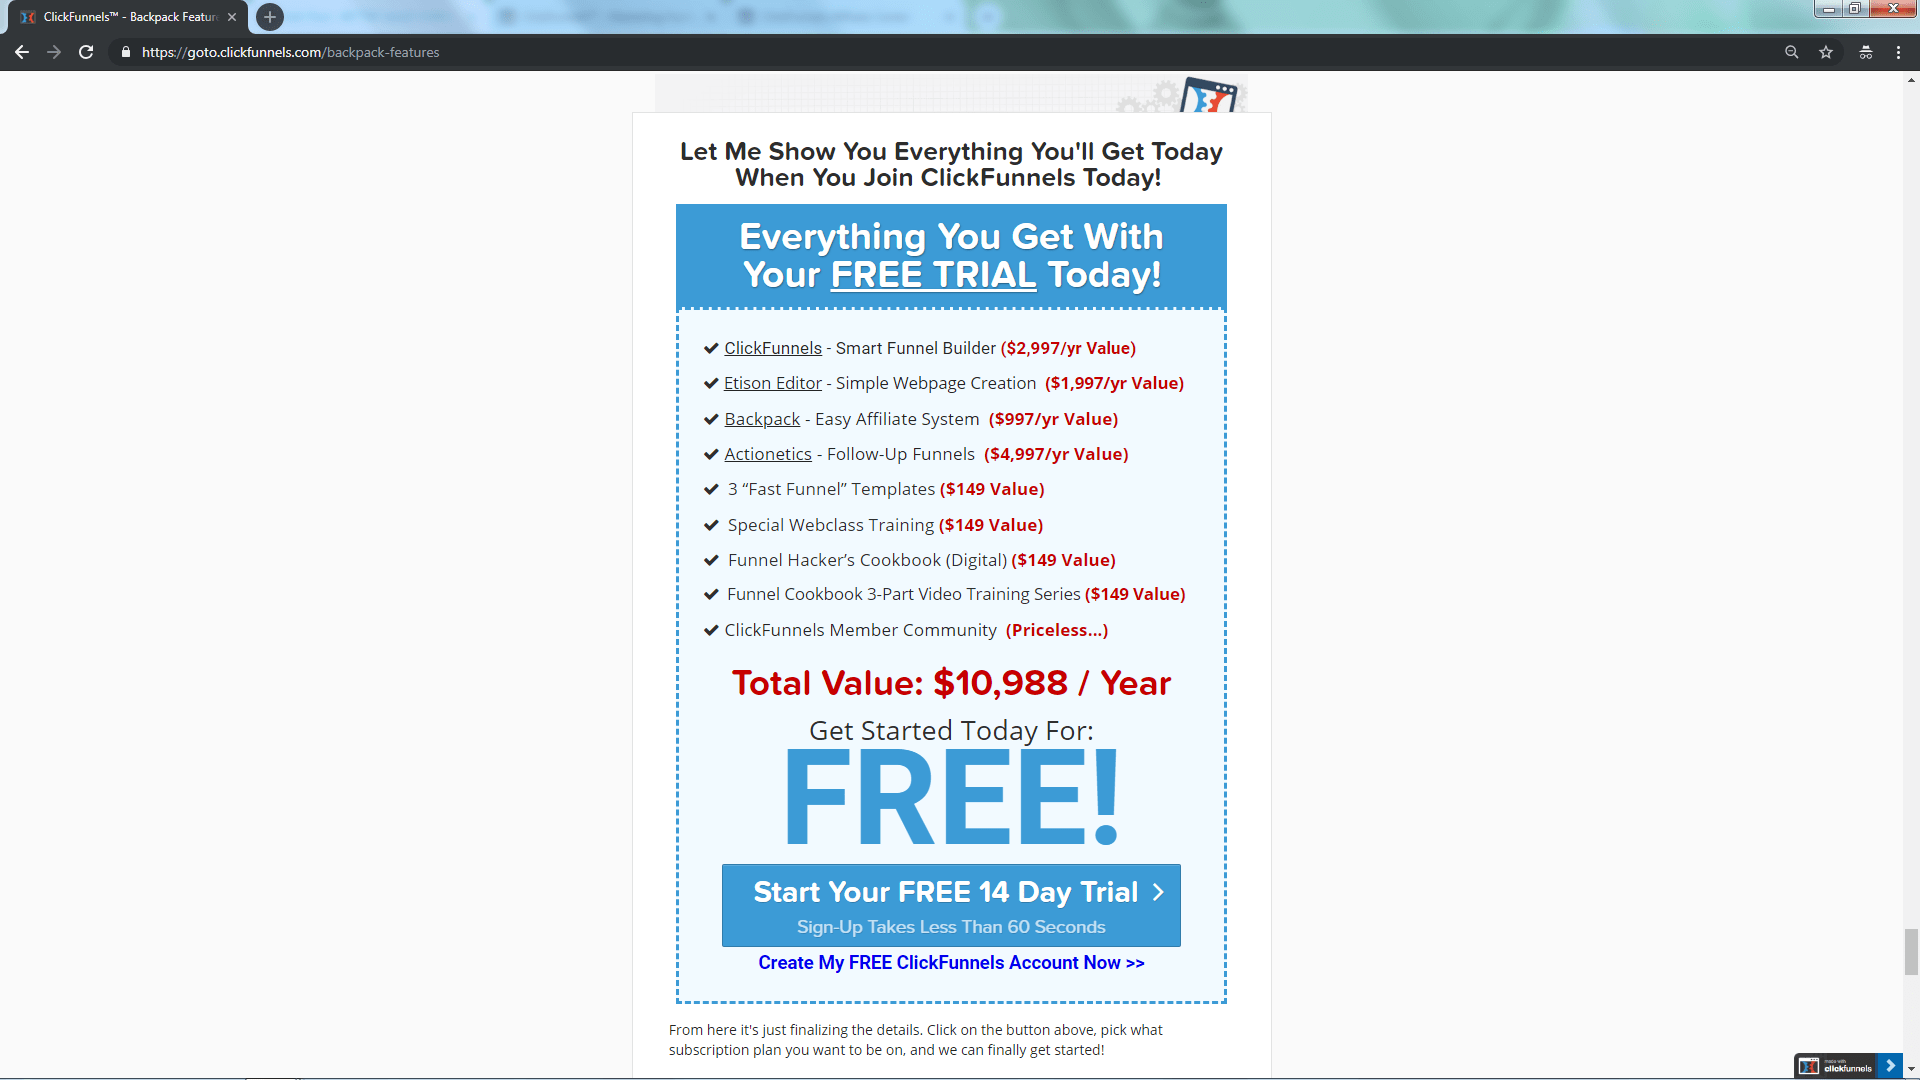 clickfunnels backpack pricing